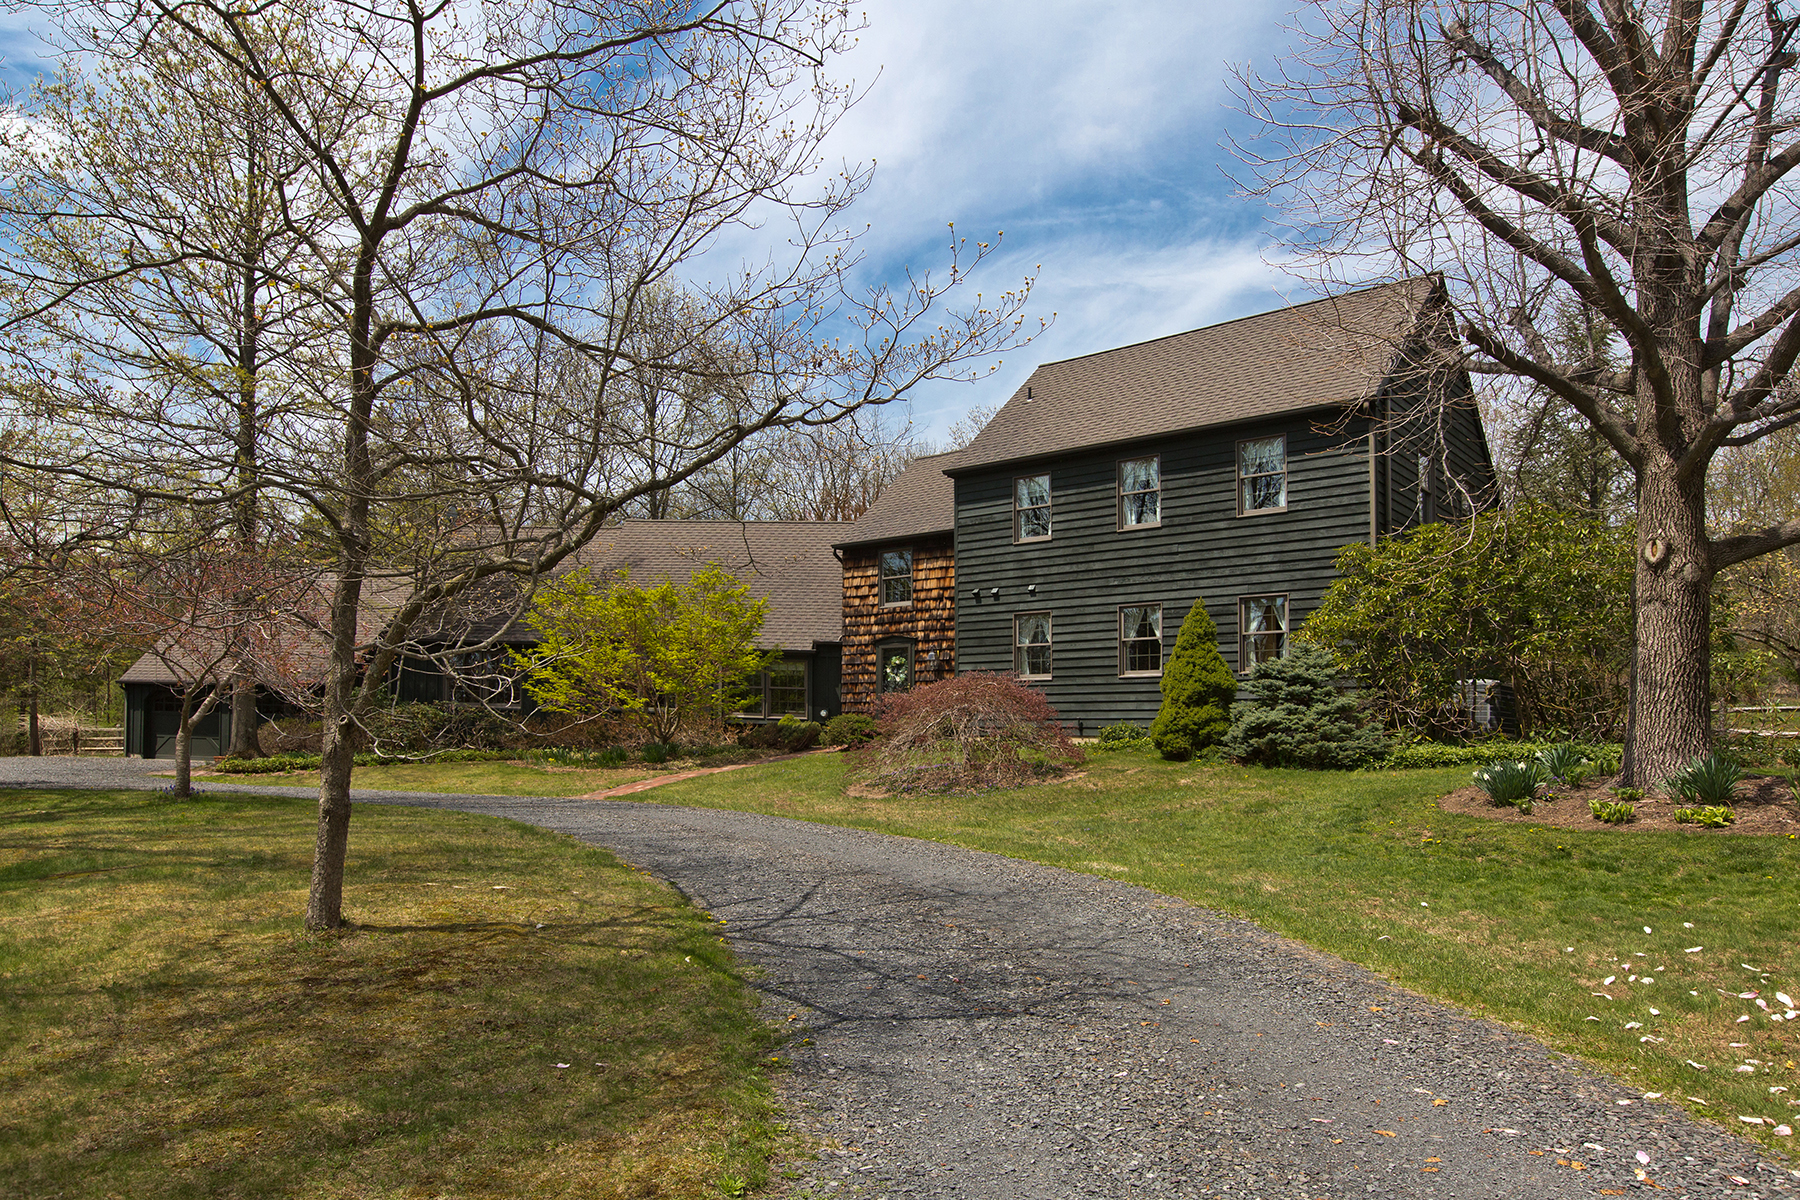 Single Family Home for Sale at Bedminster Township, PA 1650 Sweetbriar Rd Ottsville, Pennsylvania 18942 United States